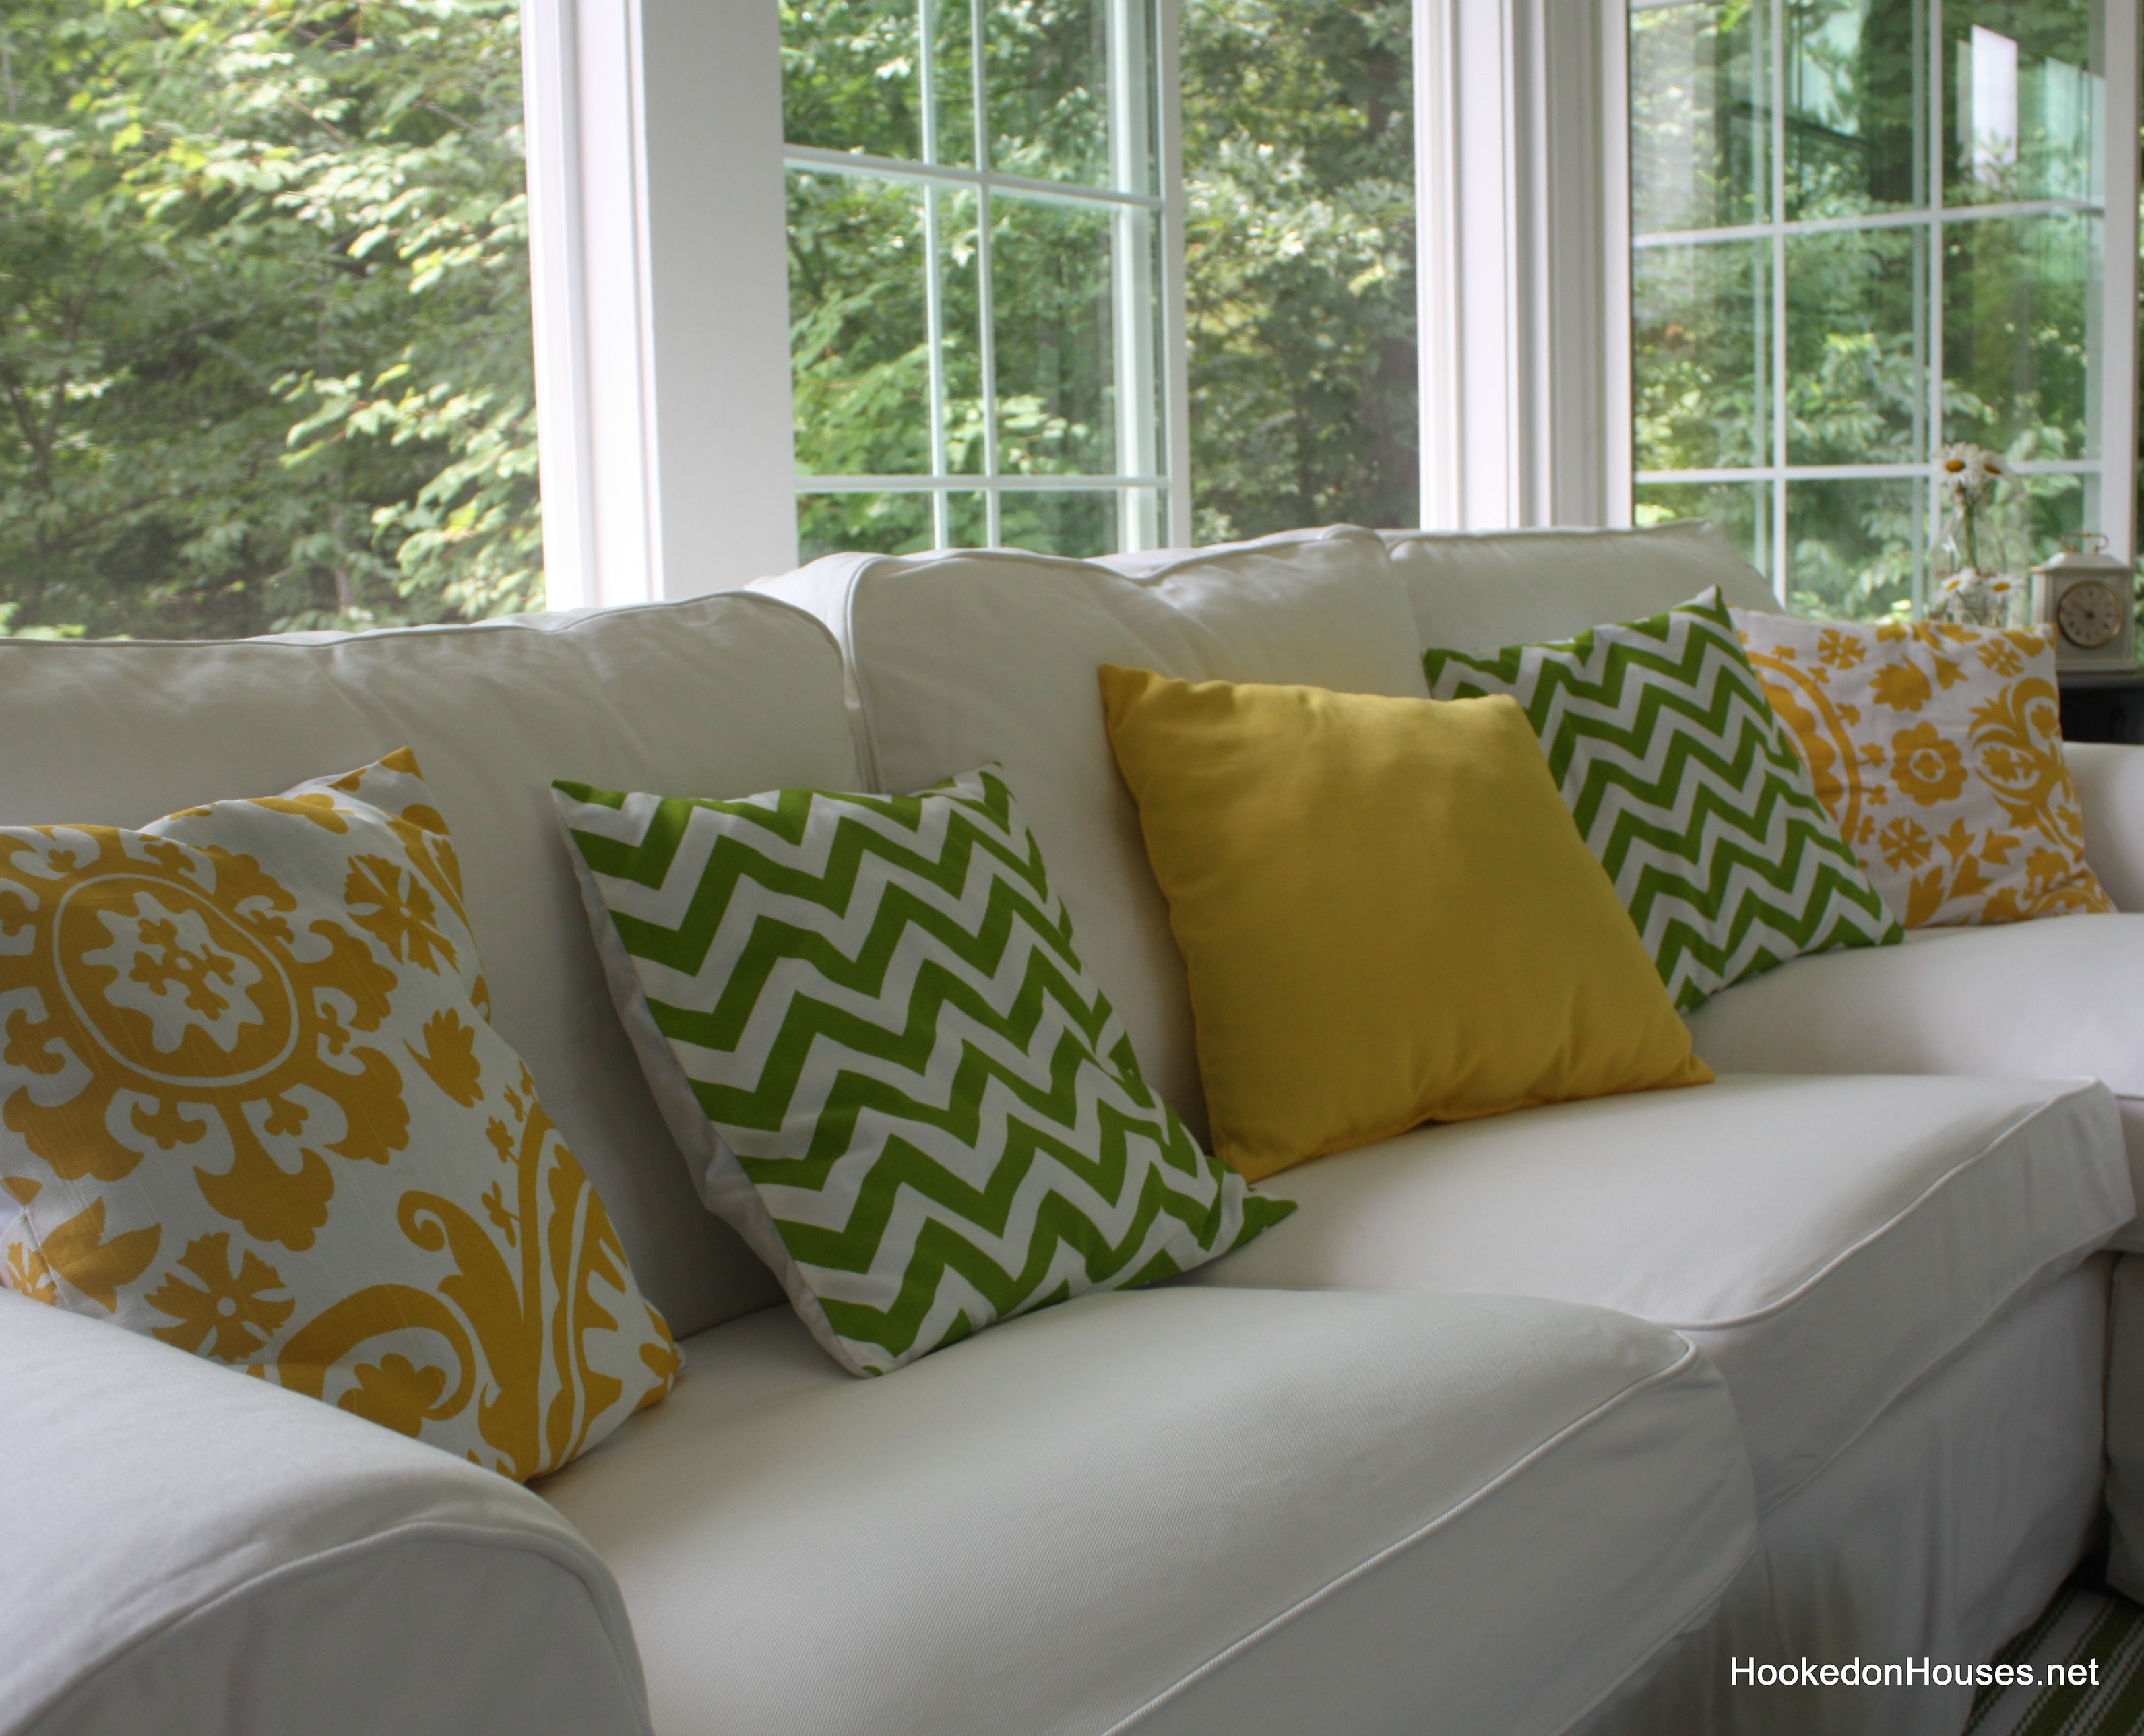 Sofa Throw Pillows With Yellow Pillow Throw Pillows Color Block